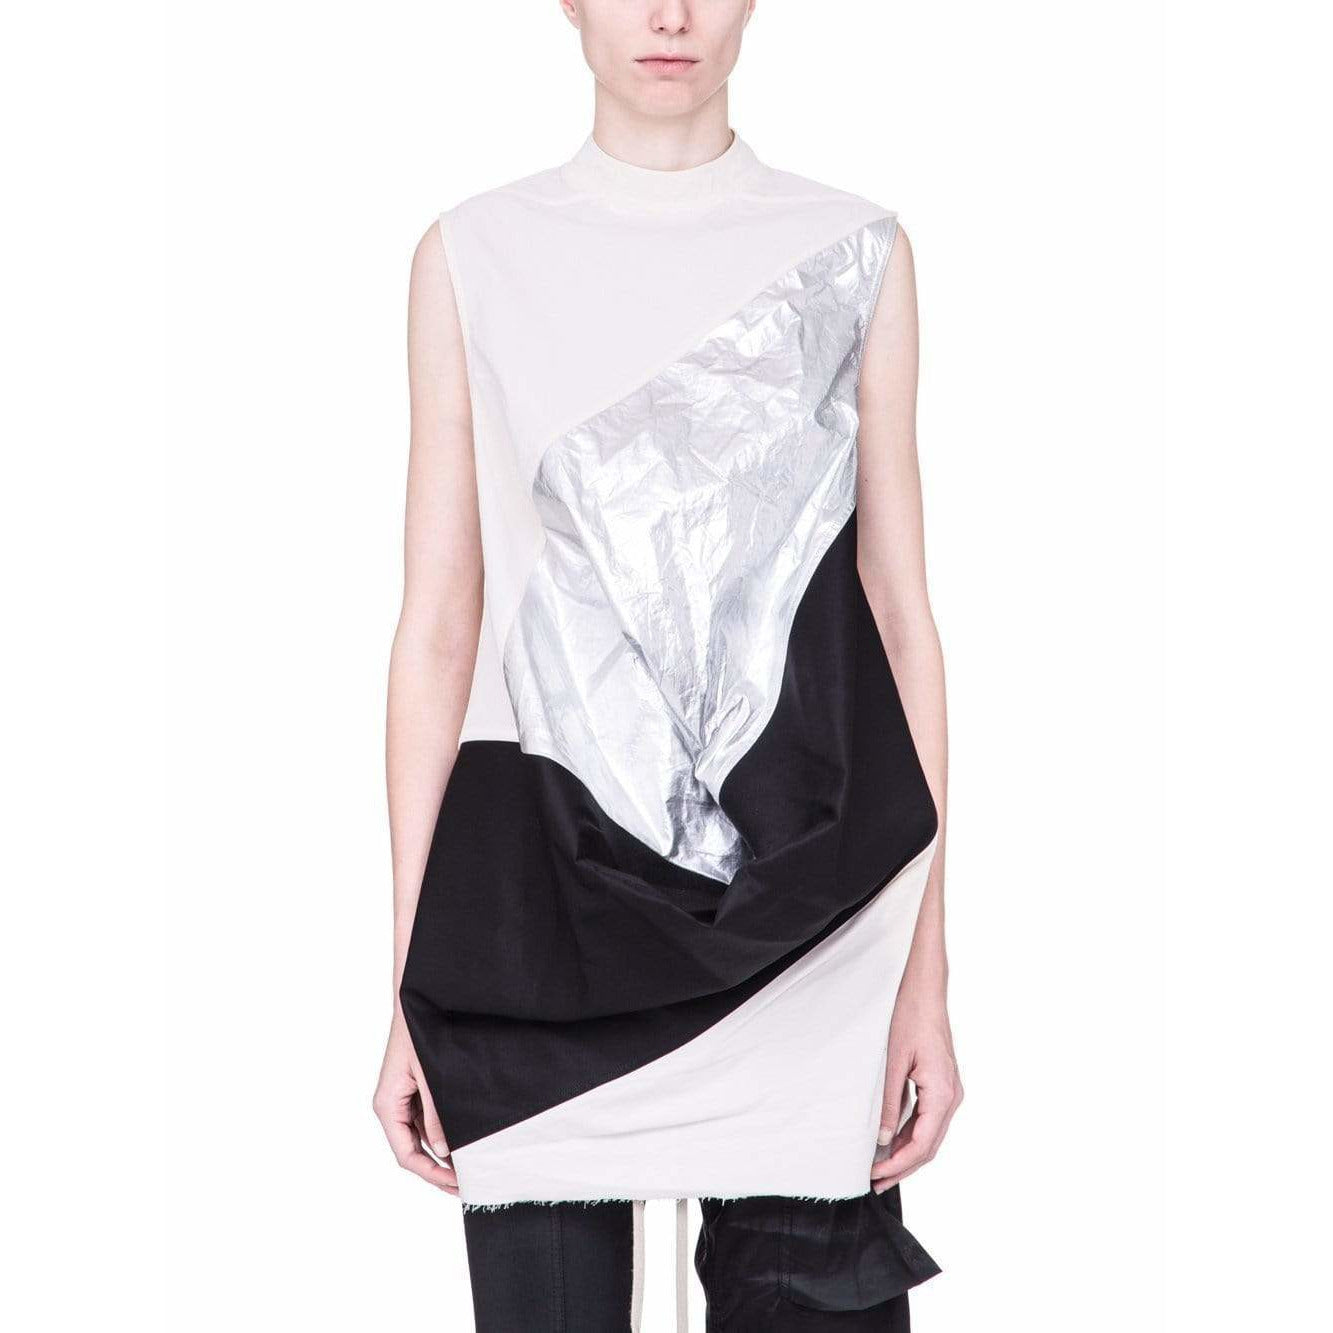 Rick Owens DRKSHDW Women Women's dresses short Dress